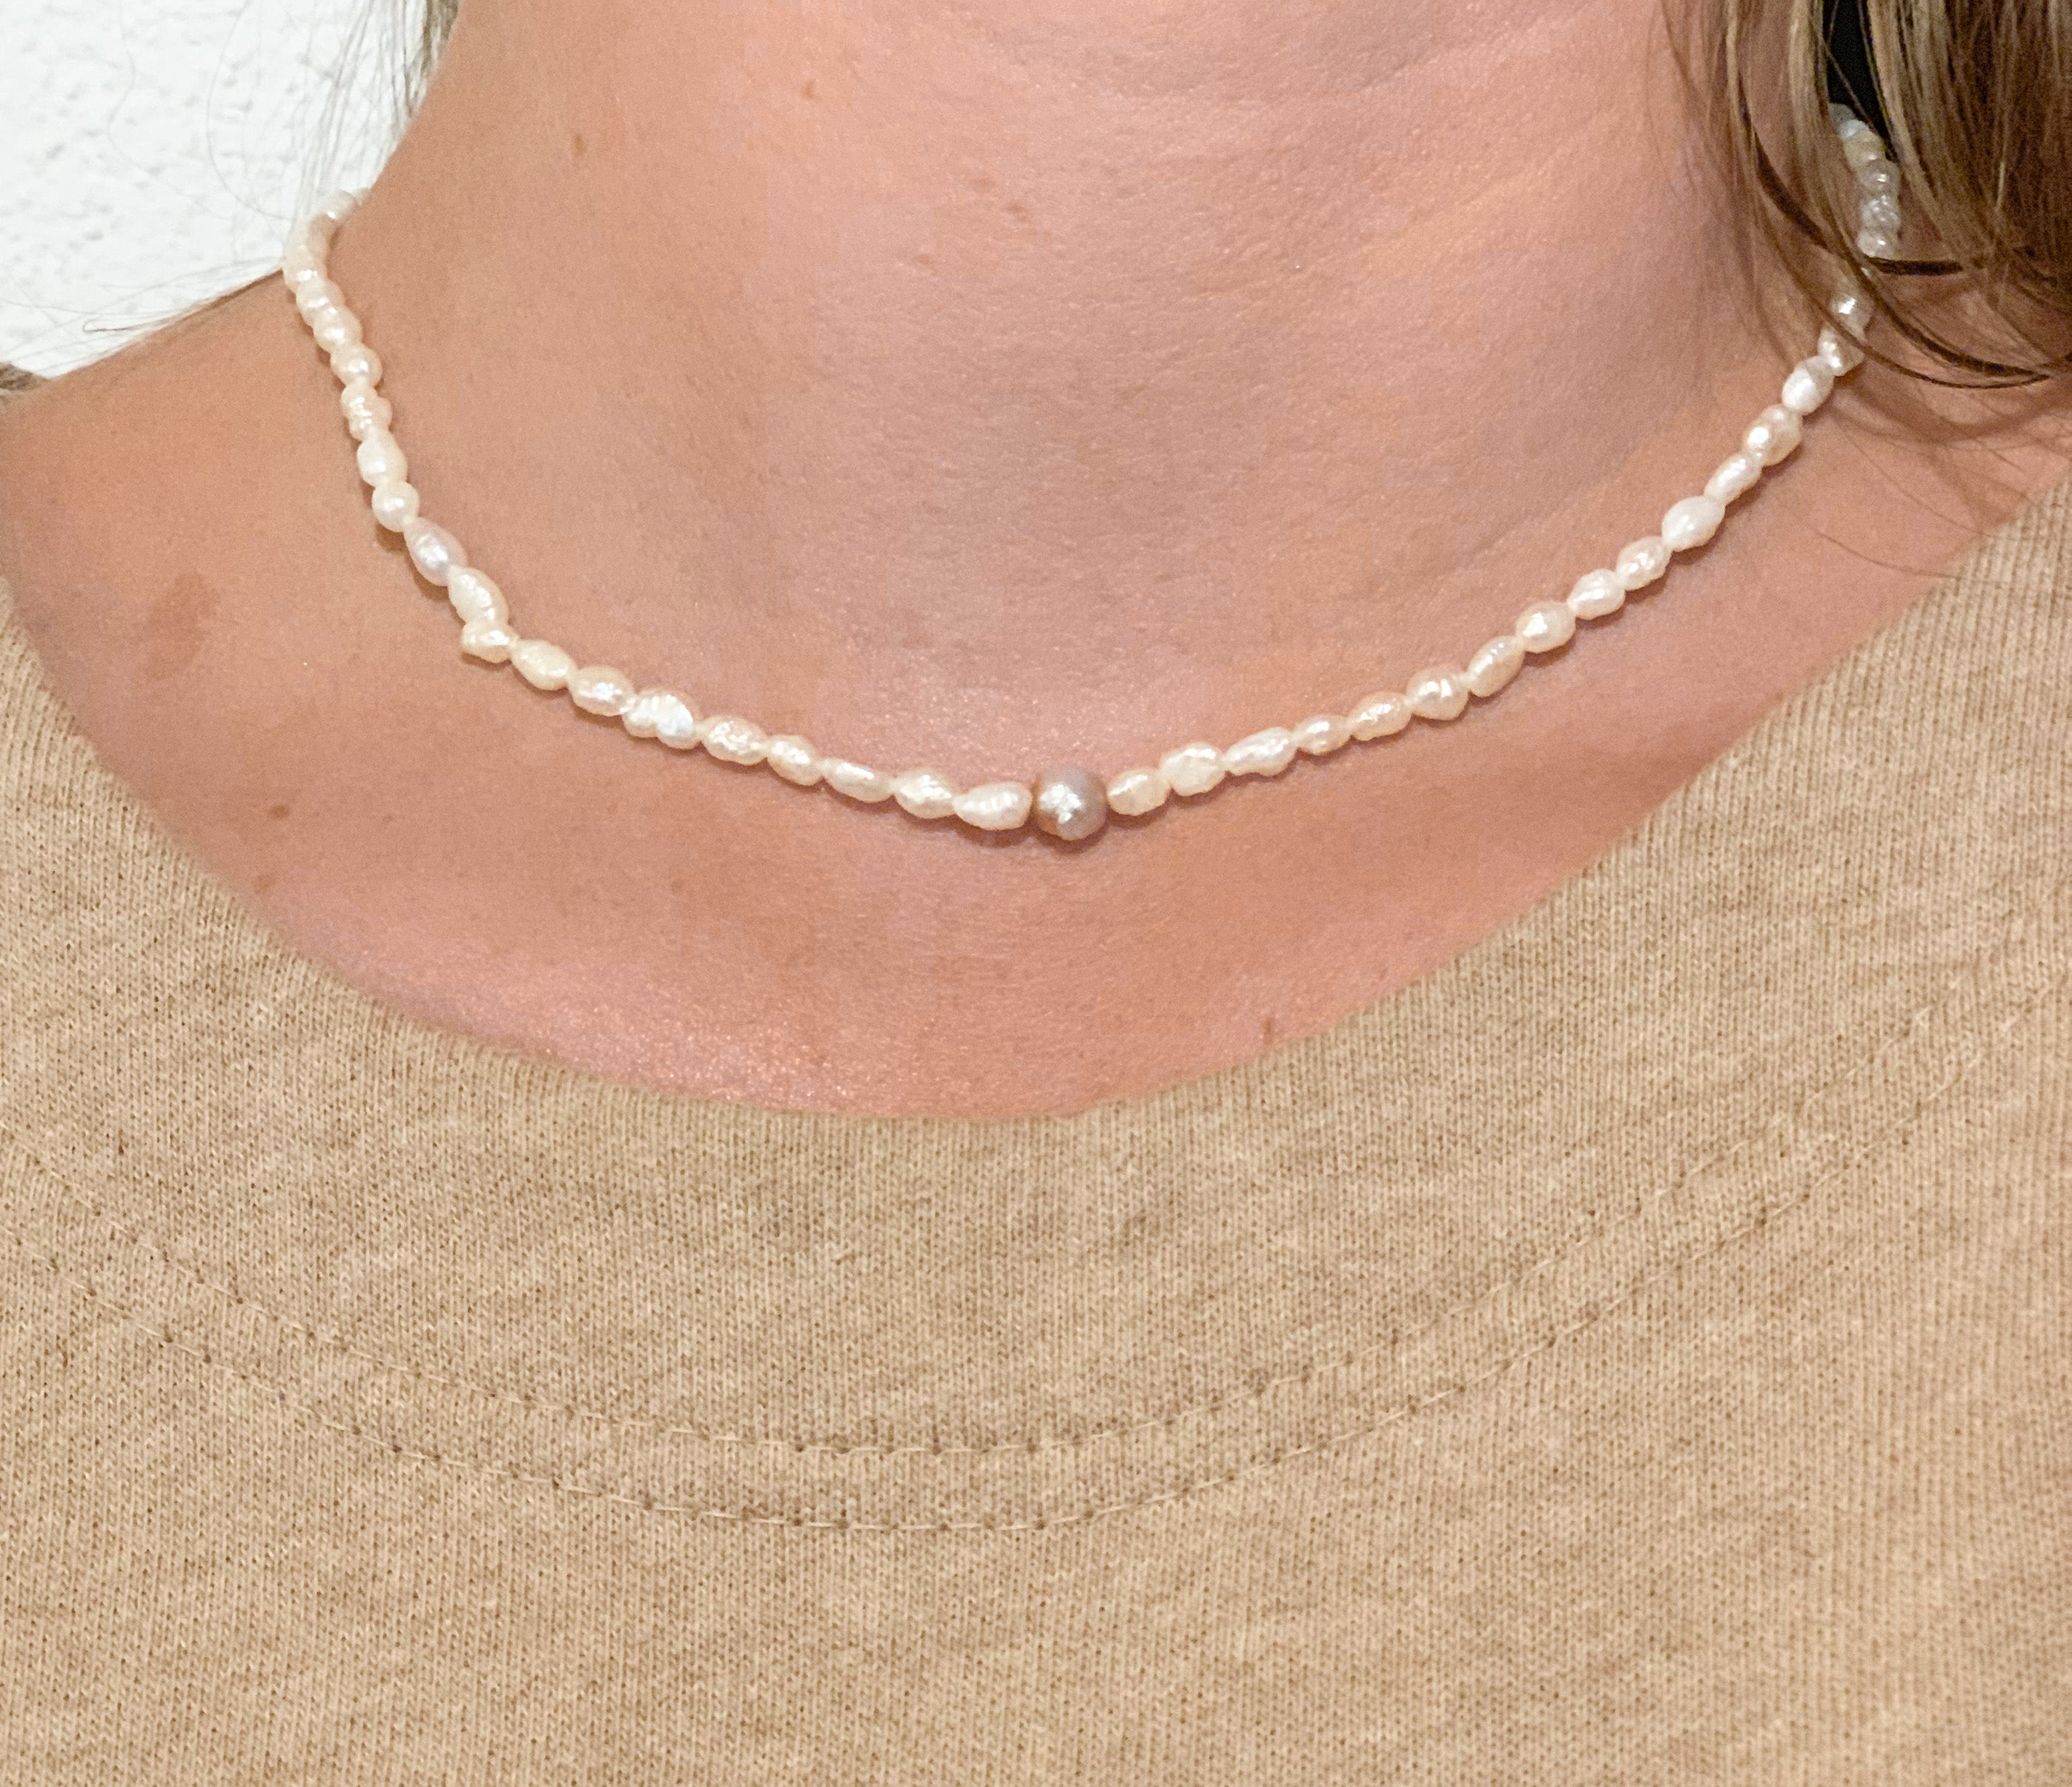 The Céline Necklace